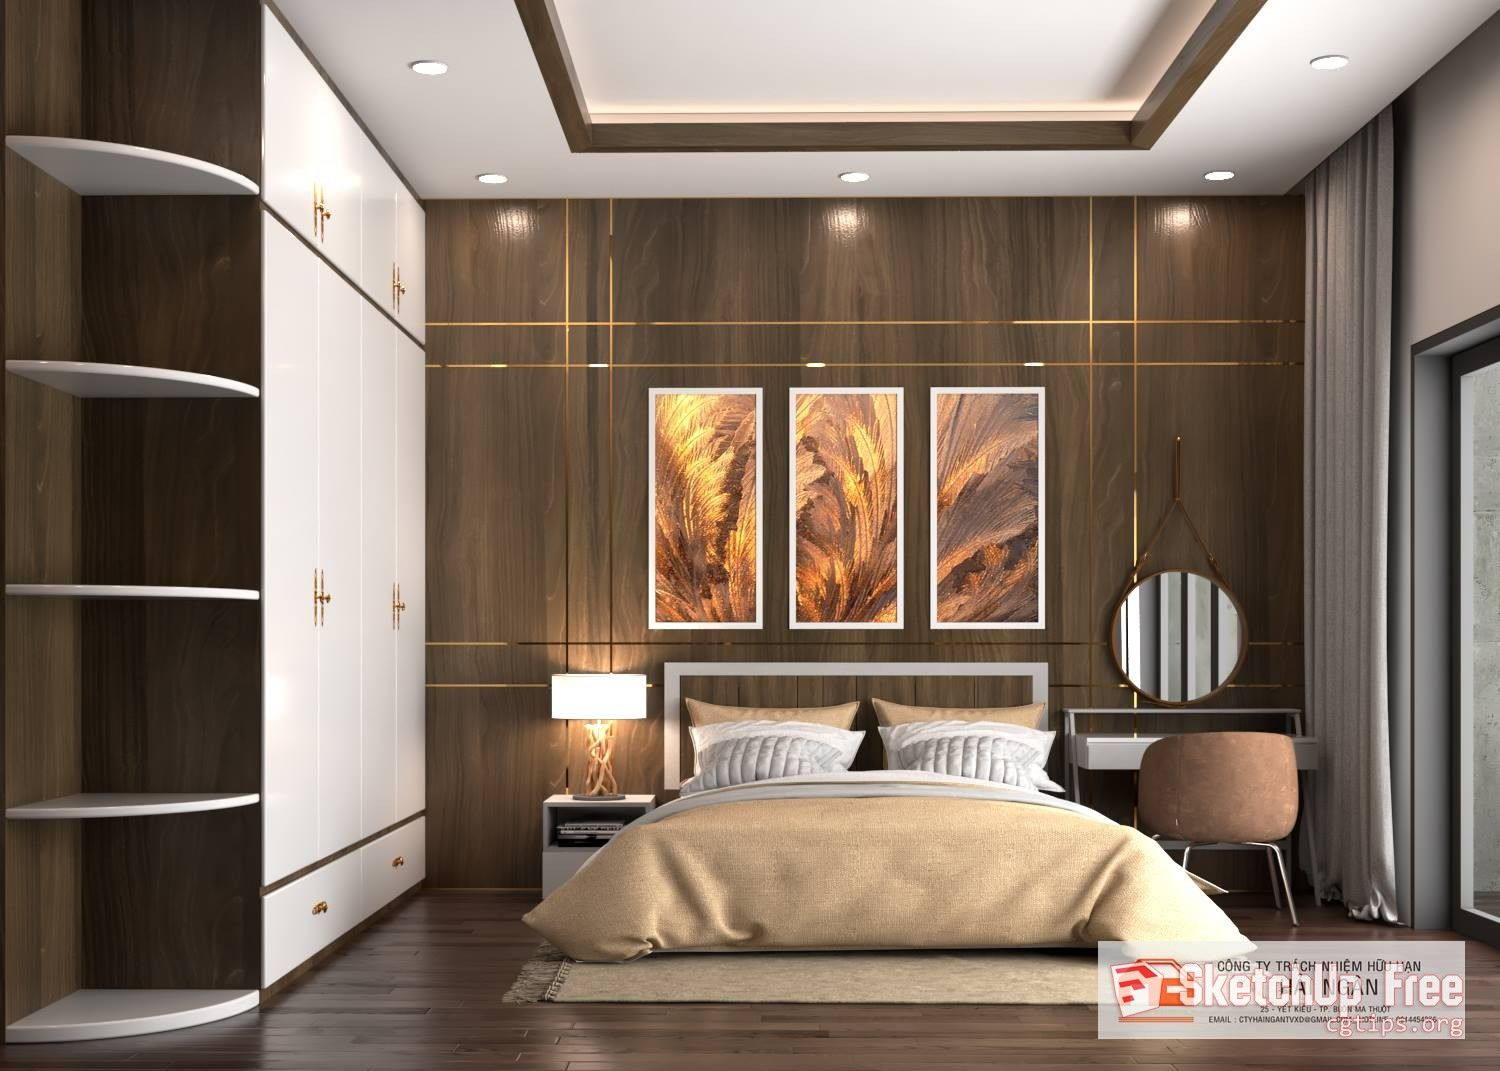 1721 Interior Bedroom Sketchup Model Free Download Bedroom Interior Interior Design Bedroom Master Bedroom Interior